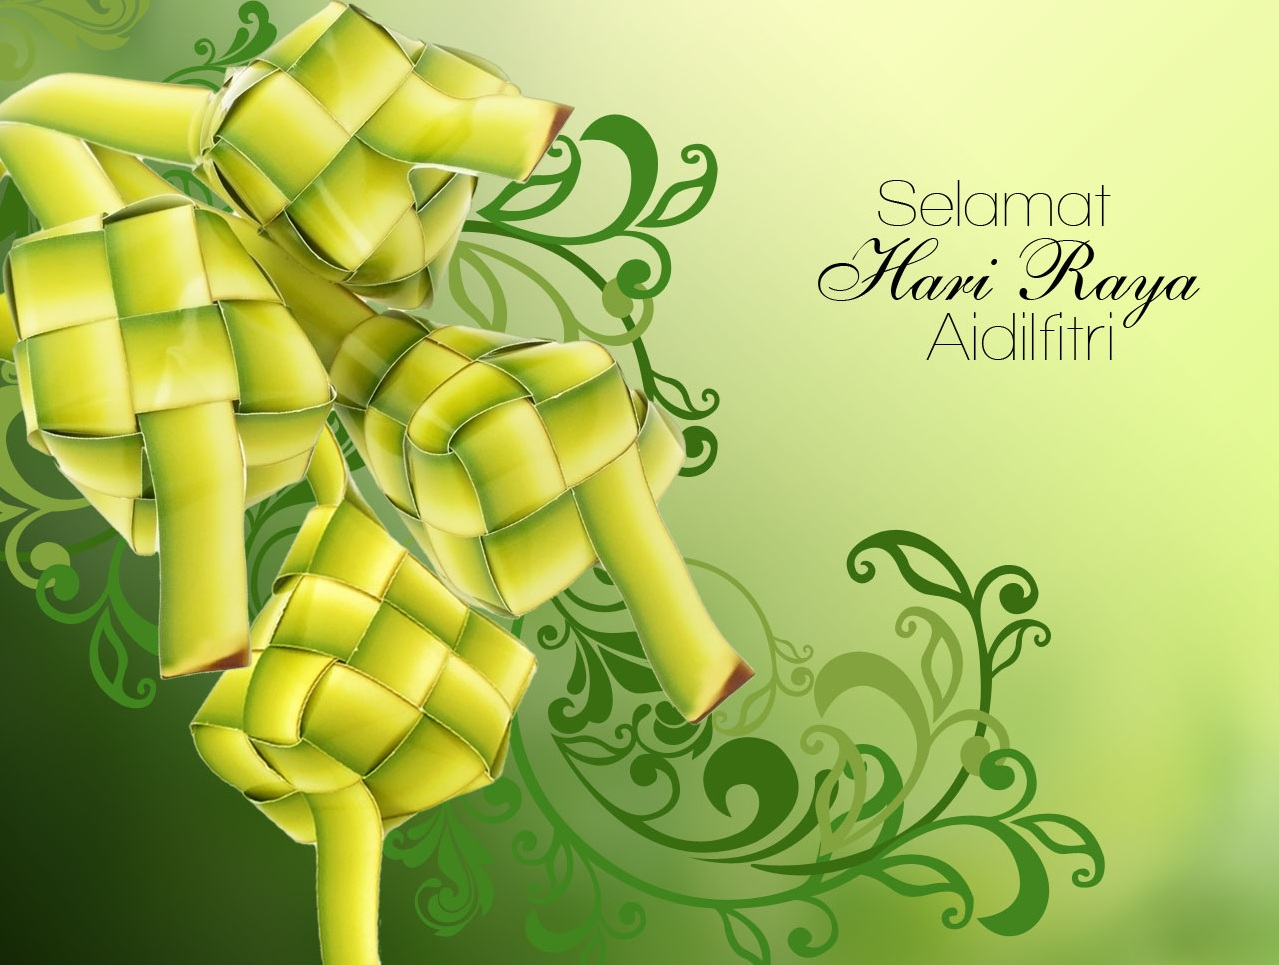 MESSAGE IN CONJUNCTION WITH  HARI RAYA CELEBRATION